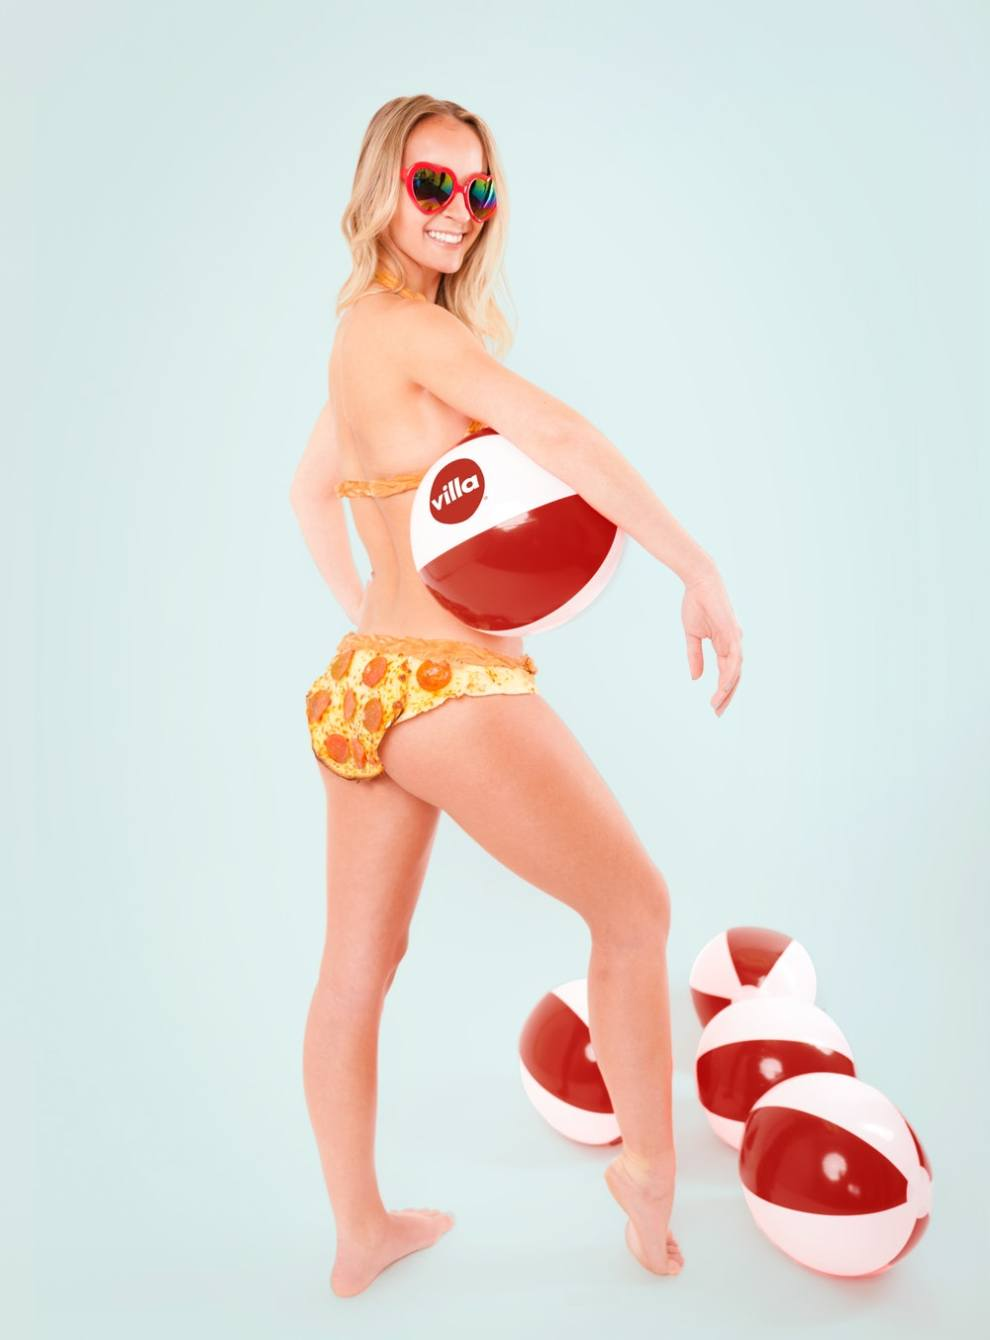 You can buy this bikini made from real pizza for $10,000